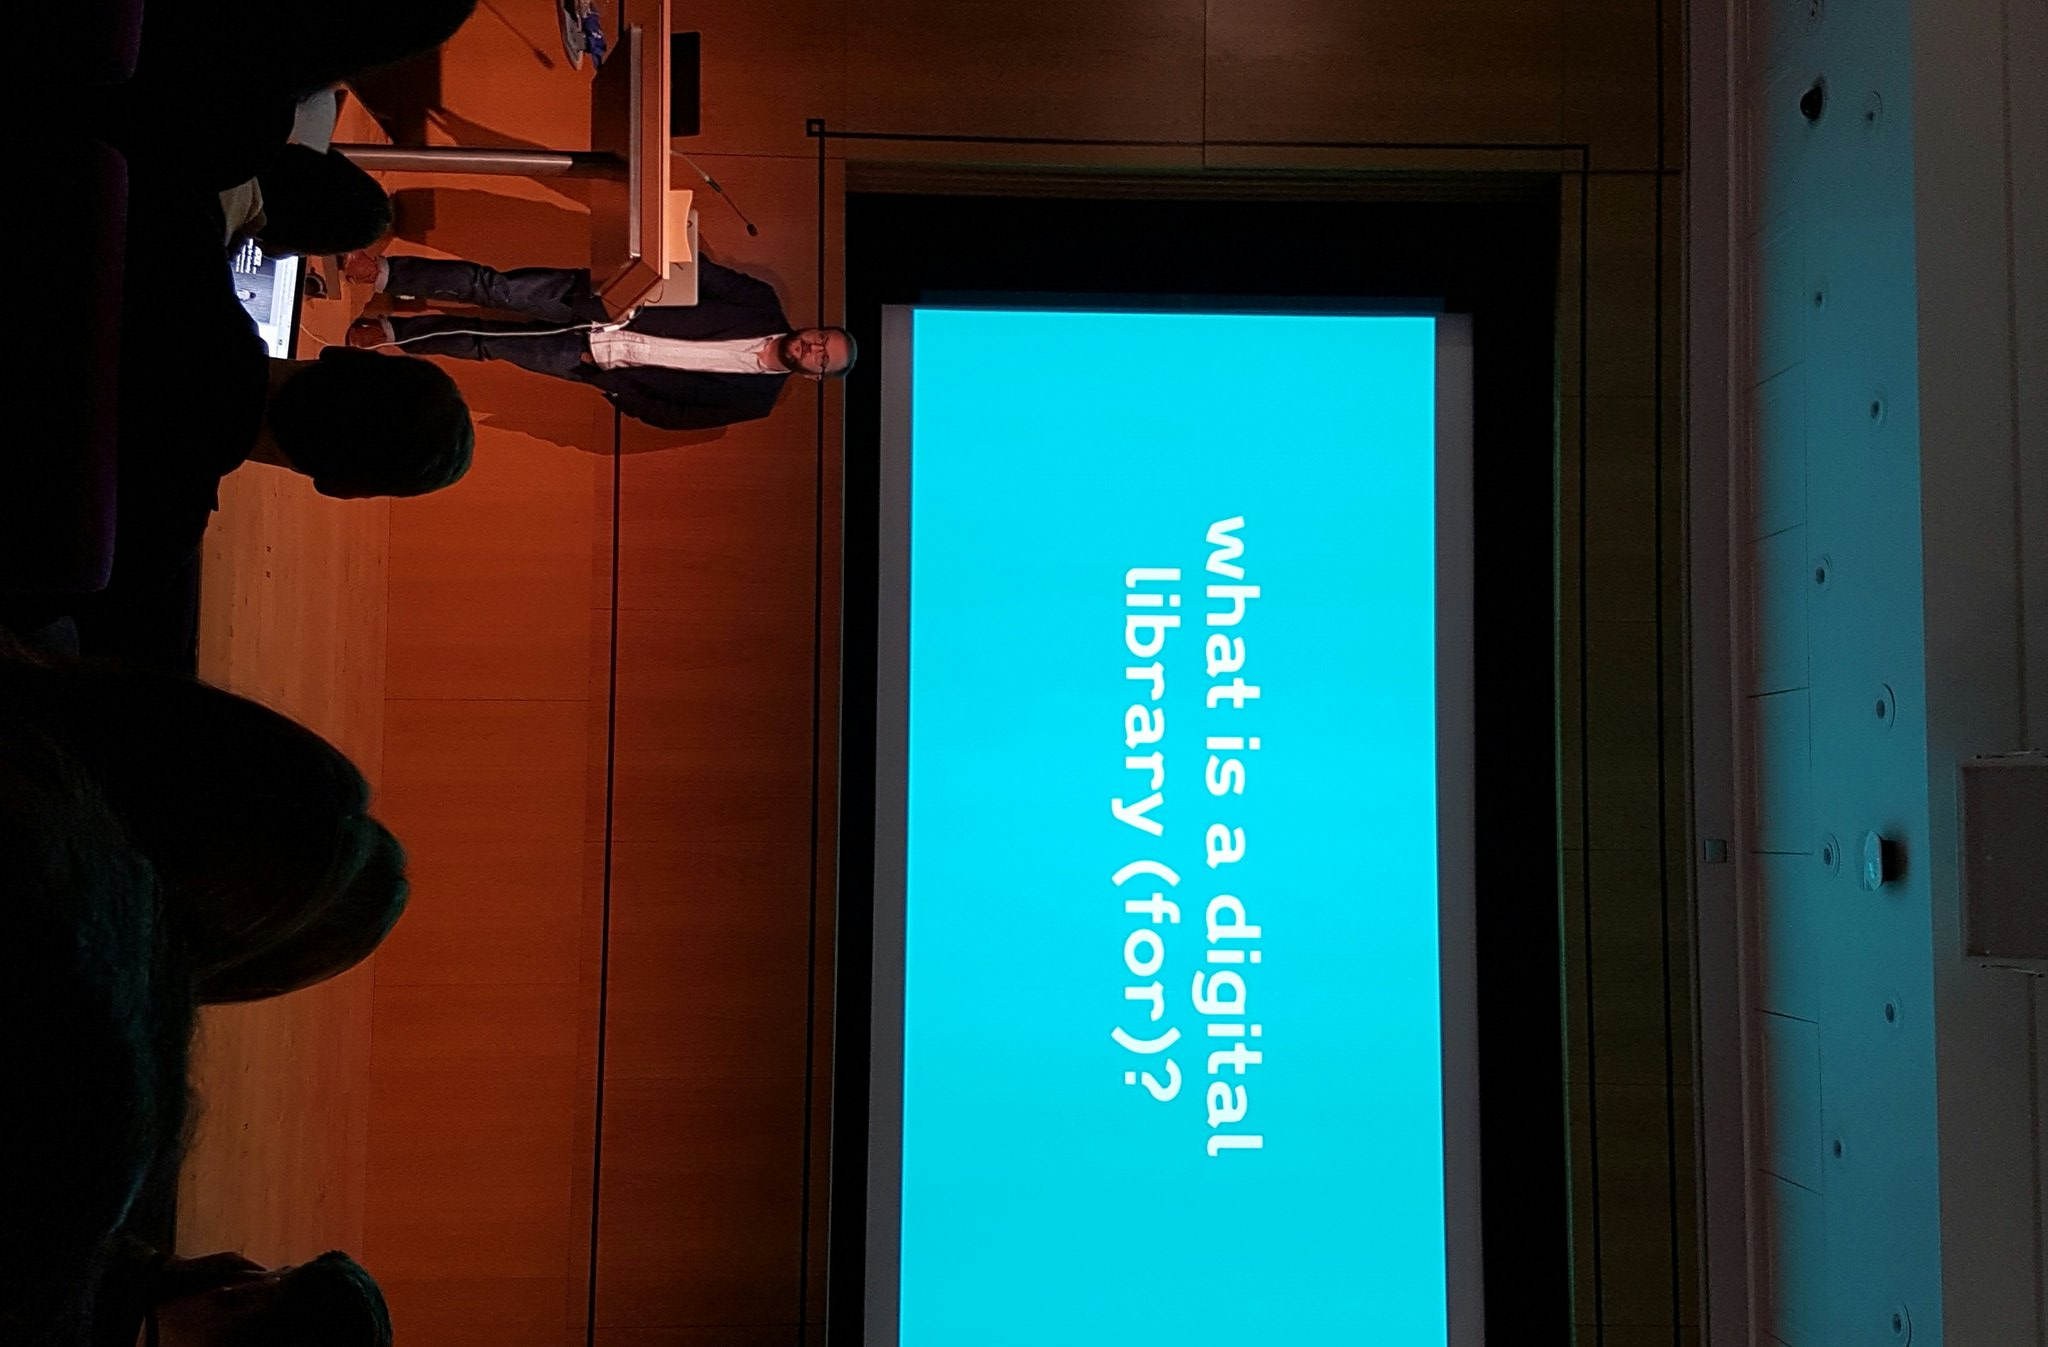 First up, @derivadow introducing @ExploreWellcome/@WellcomeLibrary. #musetech16 https://t.co/fCNT56LW56